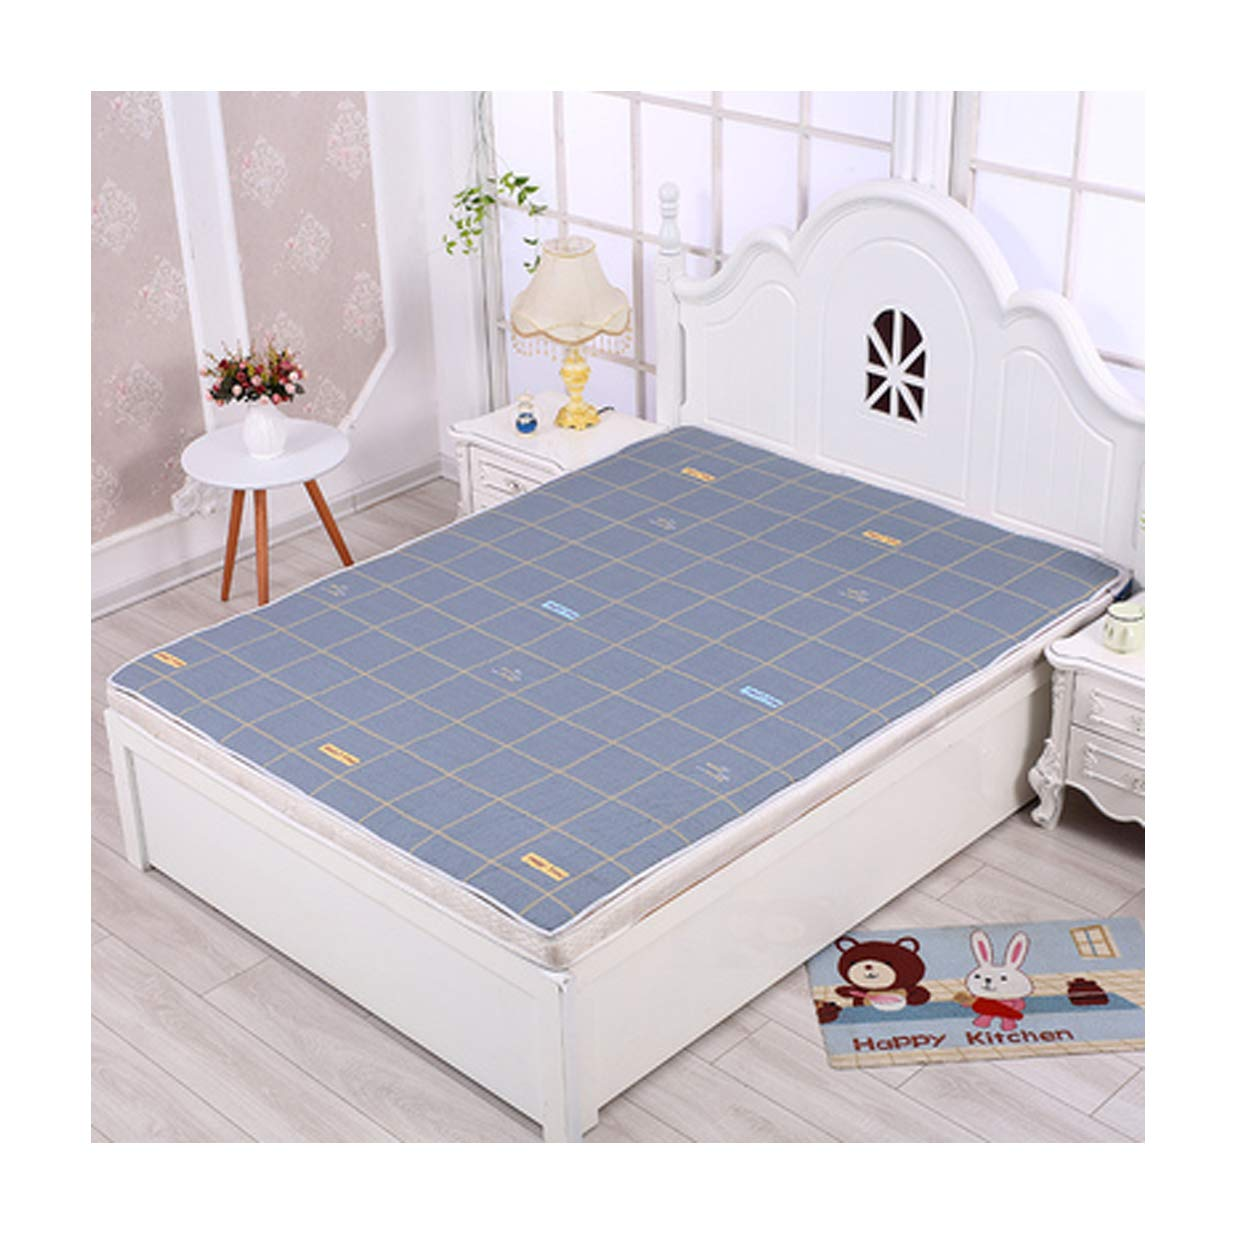 Ggsrtesxs Absorbent Premium Quality Bed Pad Adult Women Baby Patient Cotton Breathable Thicken Large Non-Slip Moisture-Proof Quilted Waterproof Reusable Washable,G,120x200cm by Ggsrtesxs